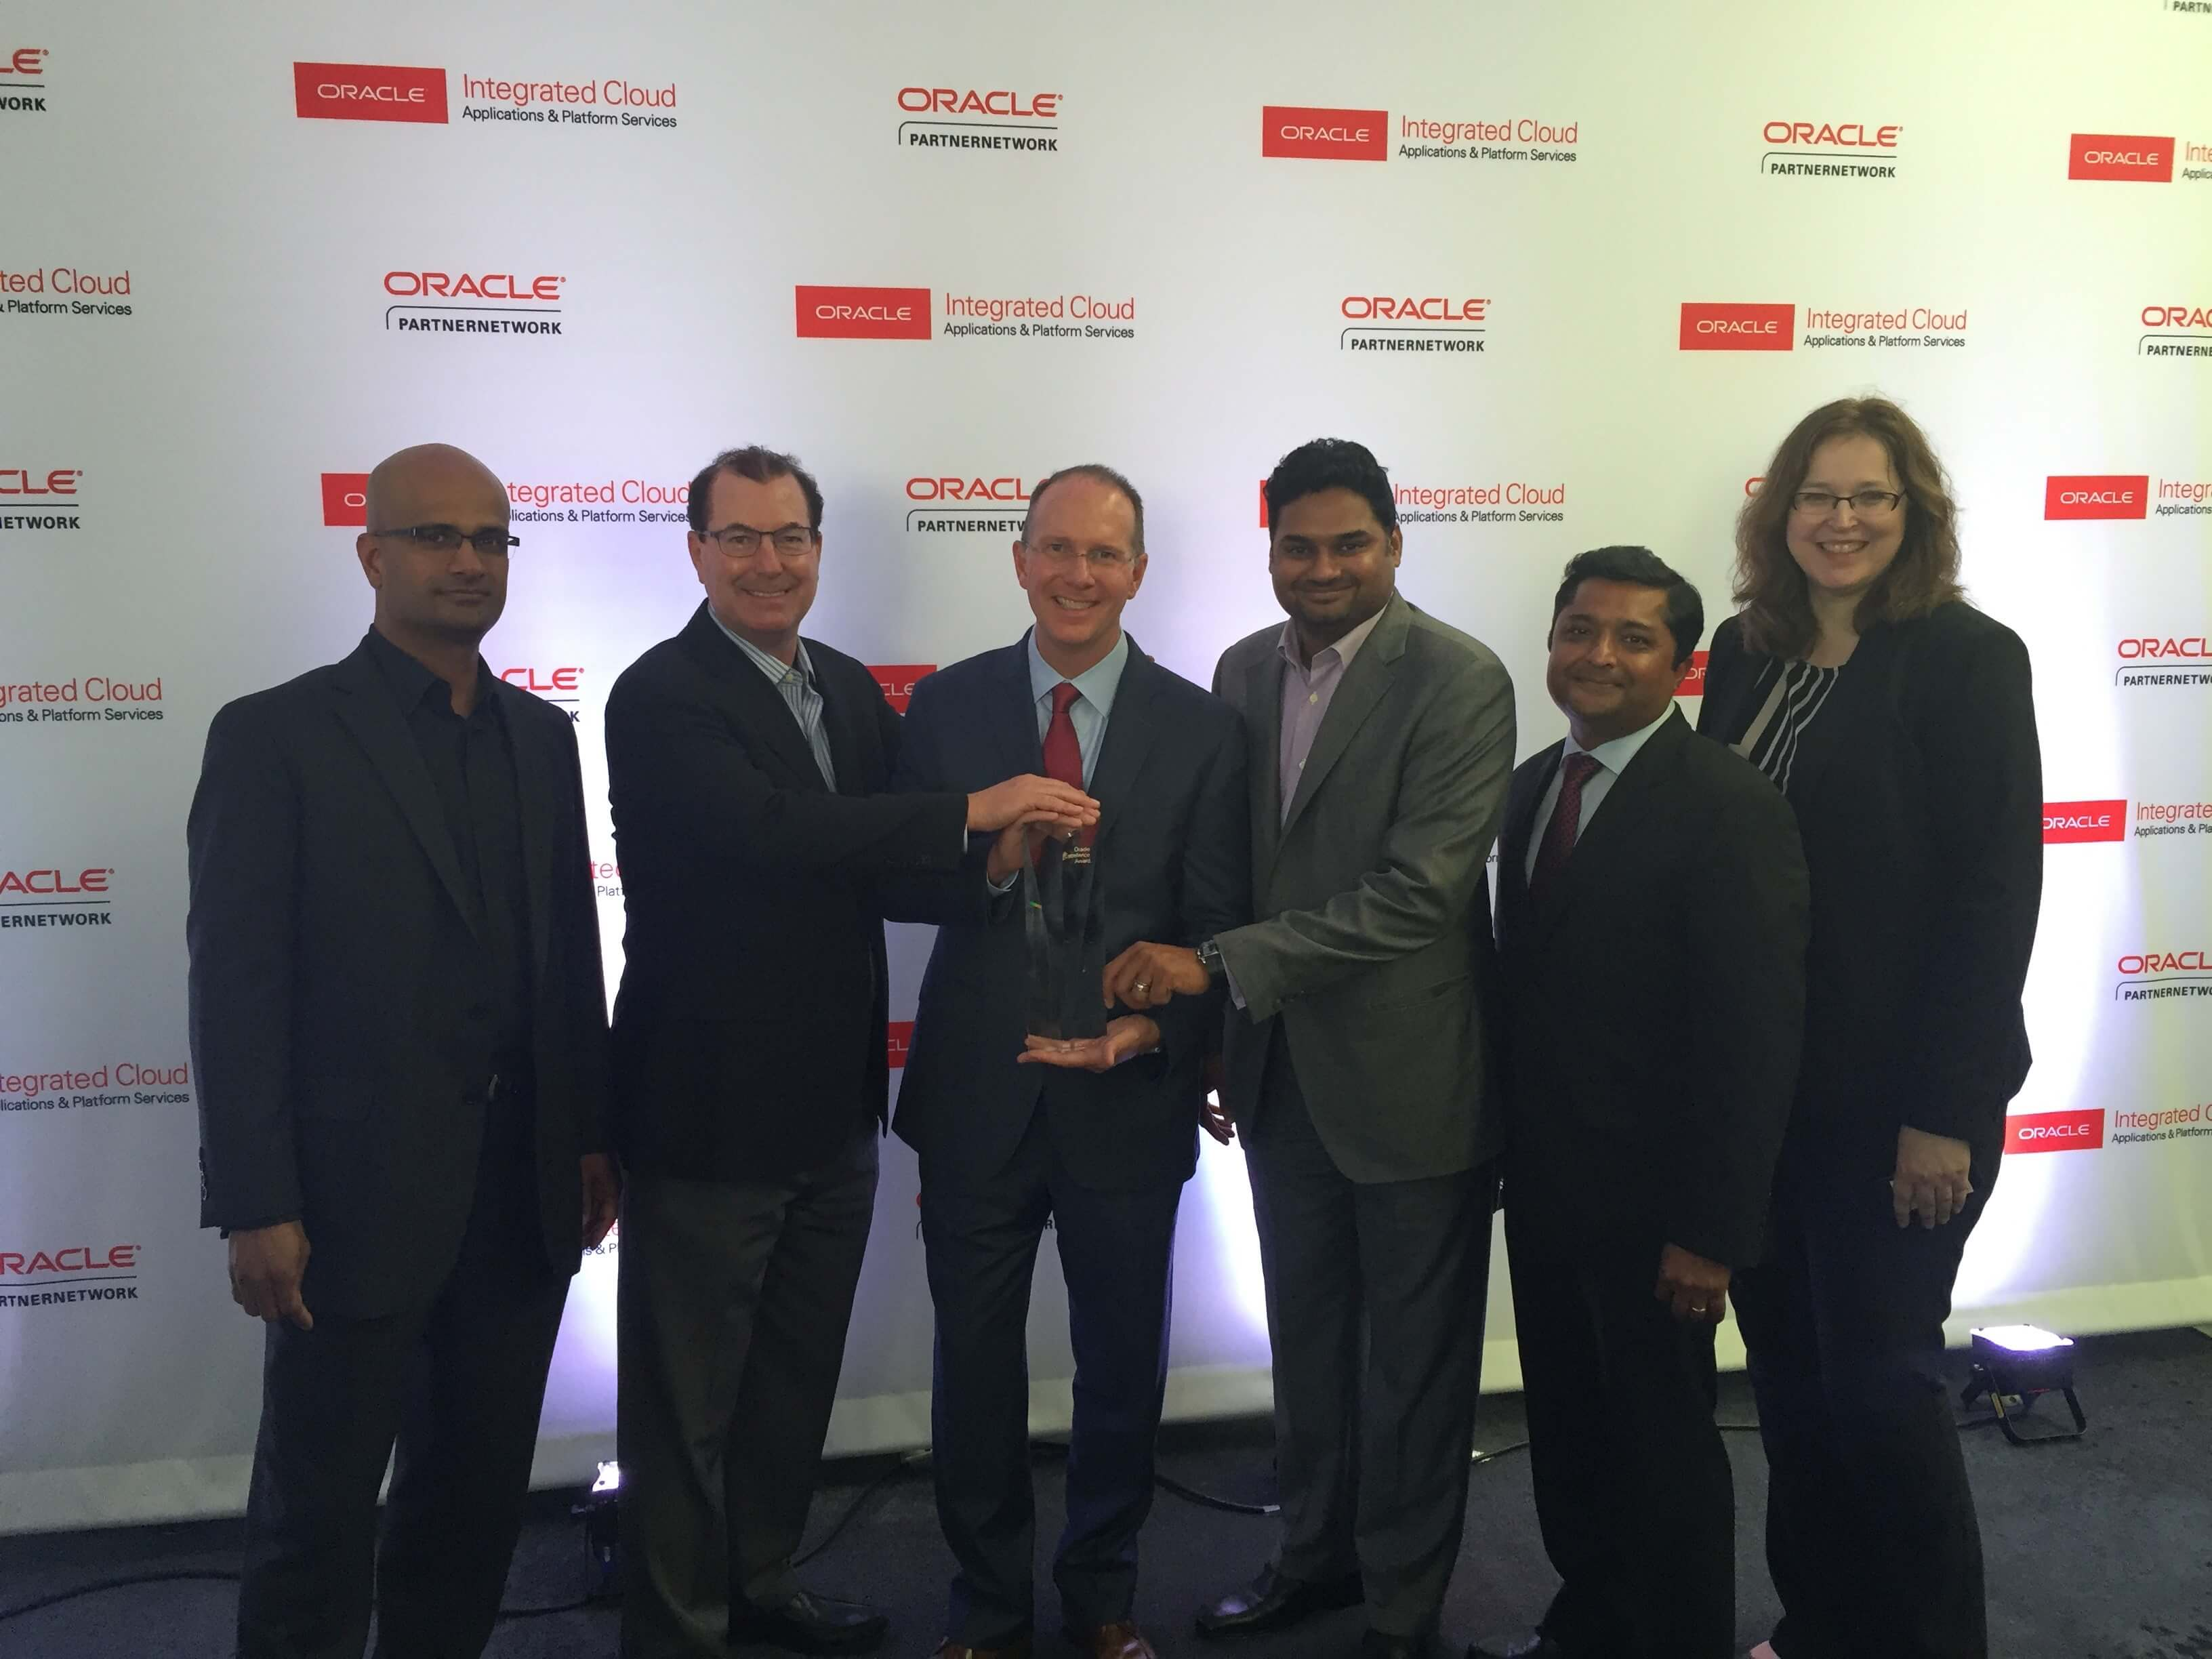 Keste Wins Oracle's Specialized Partner of the Year for CX Sales Cloud